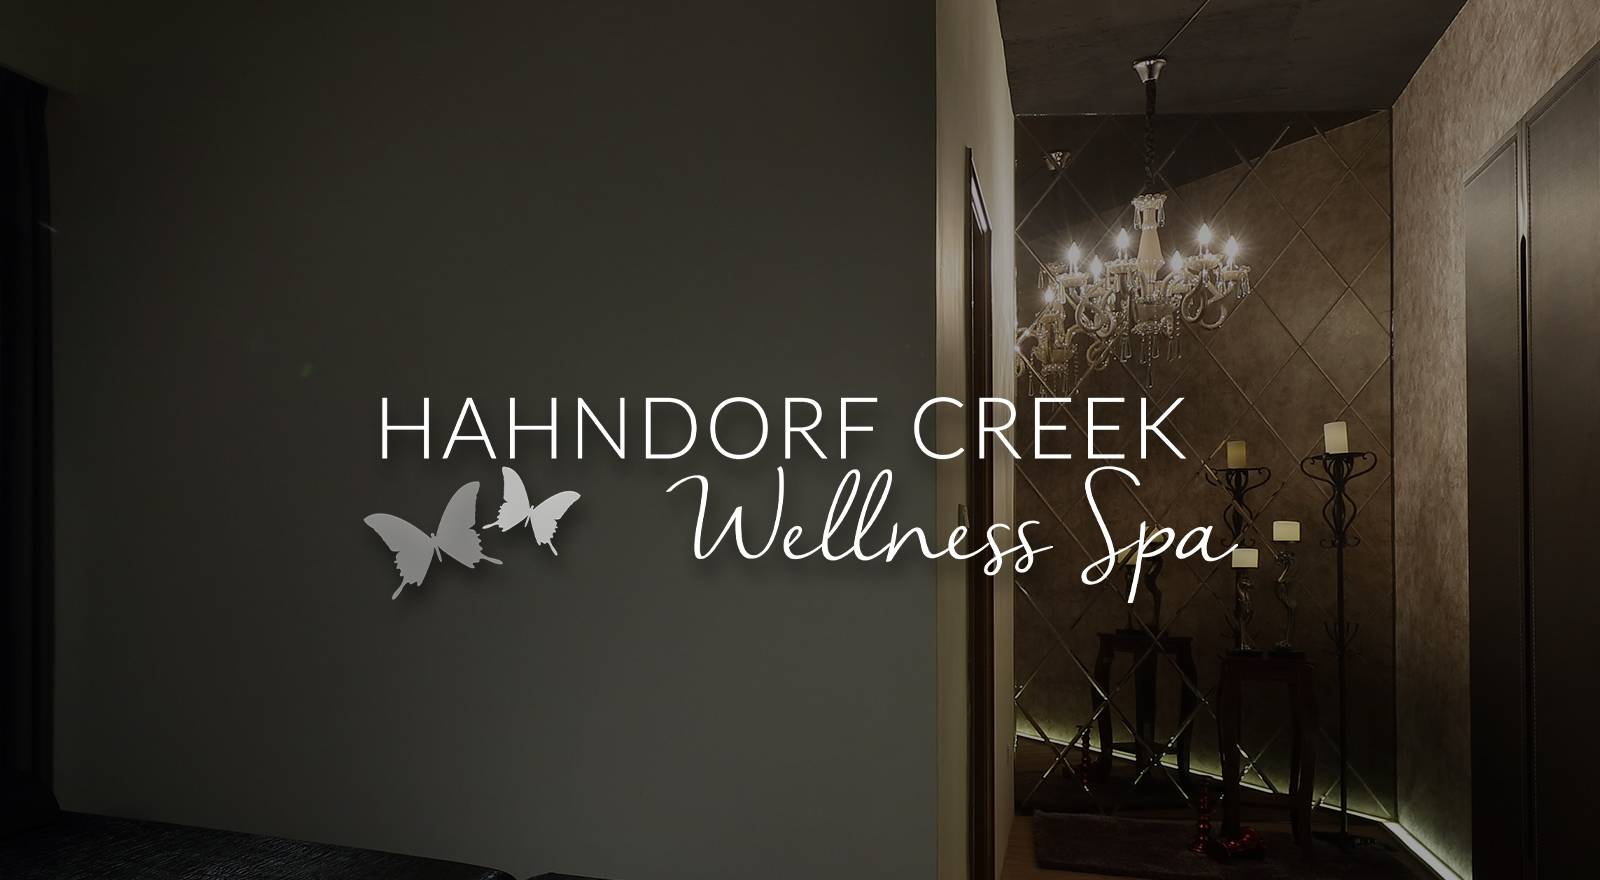 Hahndorf Creek Wellness Spa logo redesign